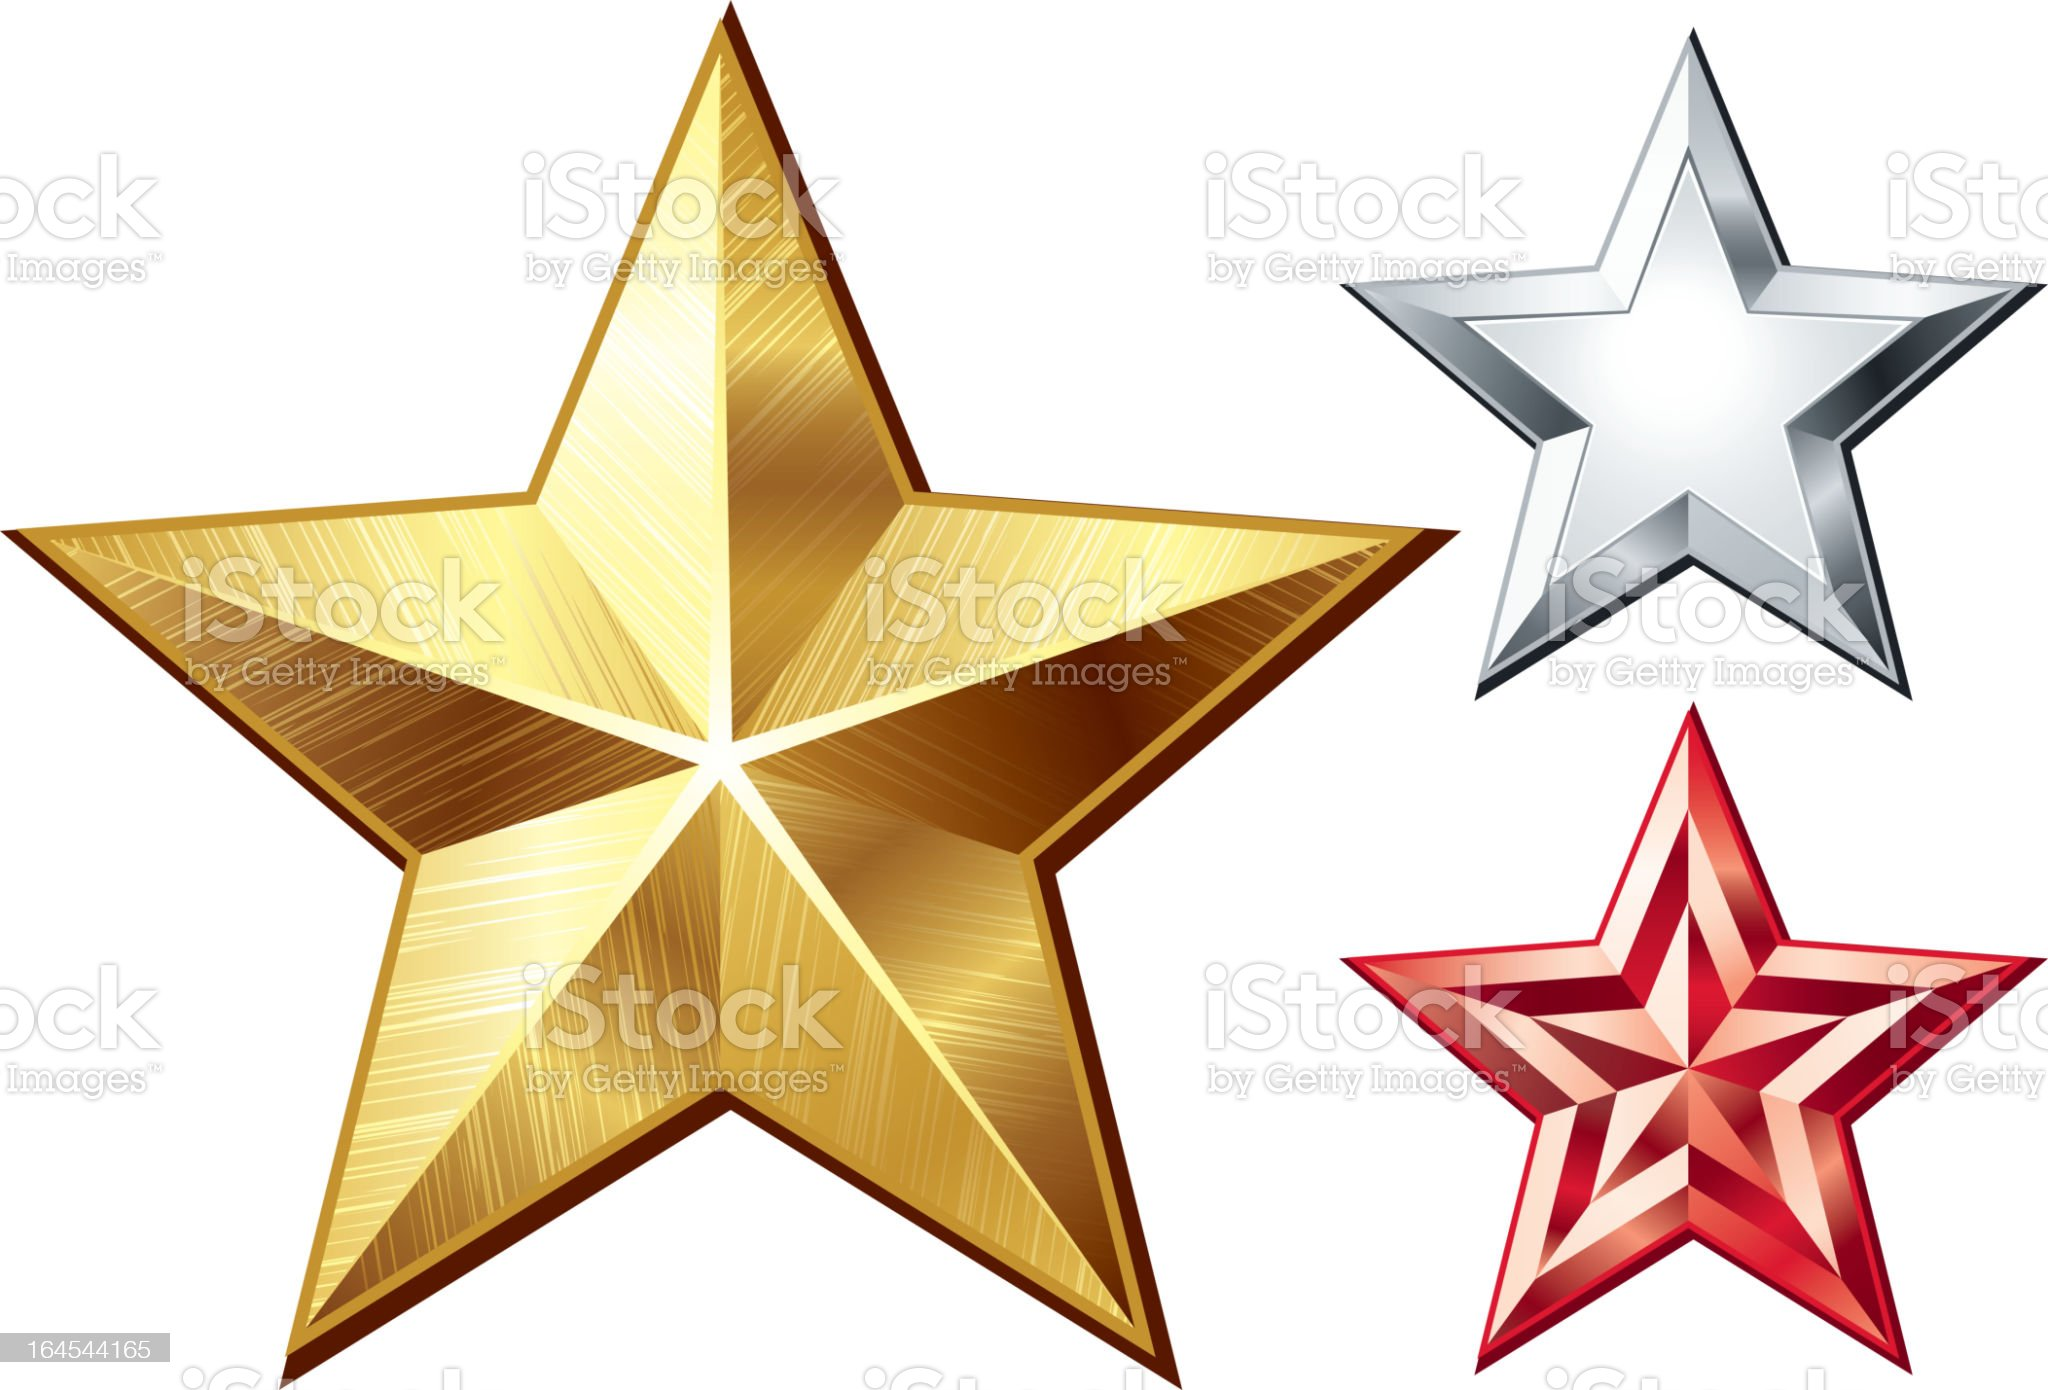 Gold, red and silver graphic reflective stars royalty-free stock vector art